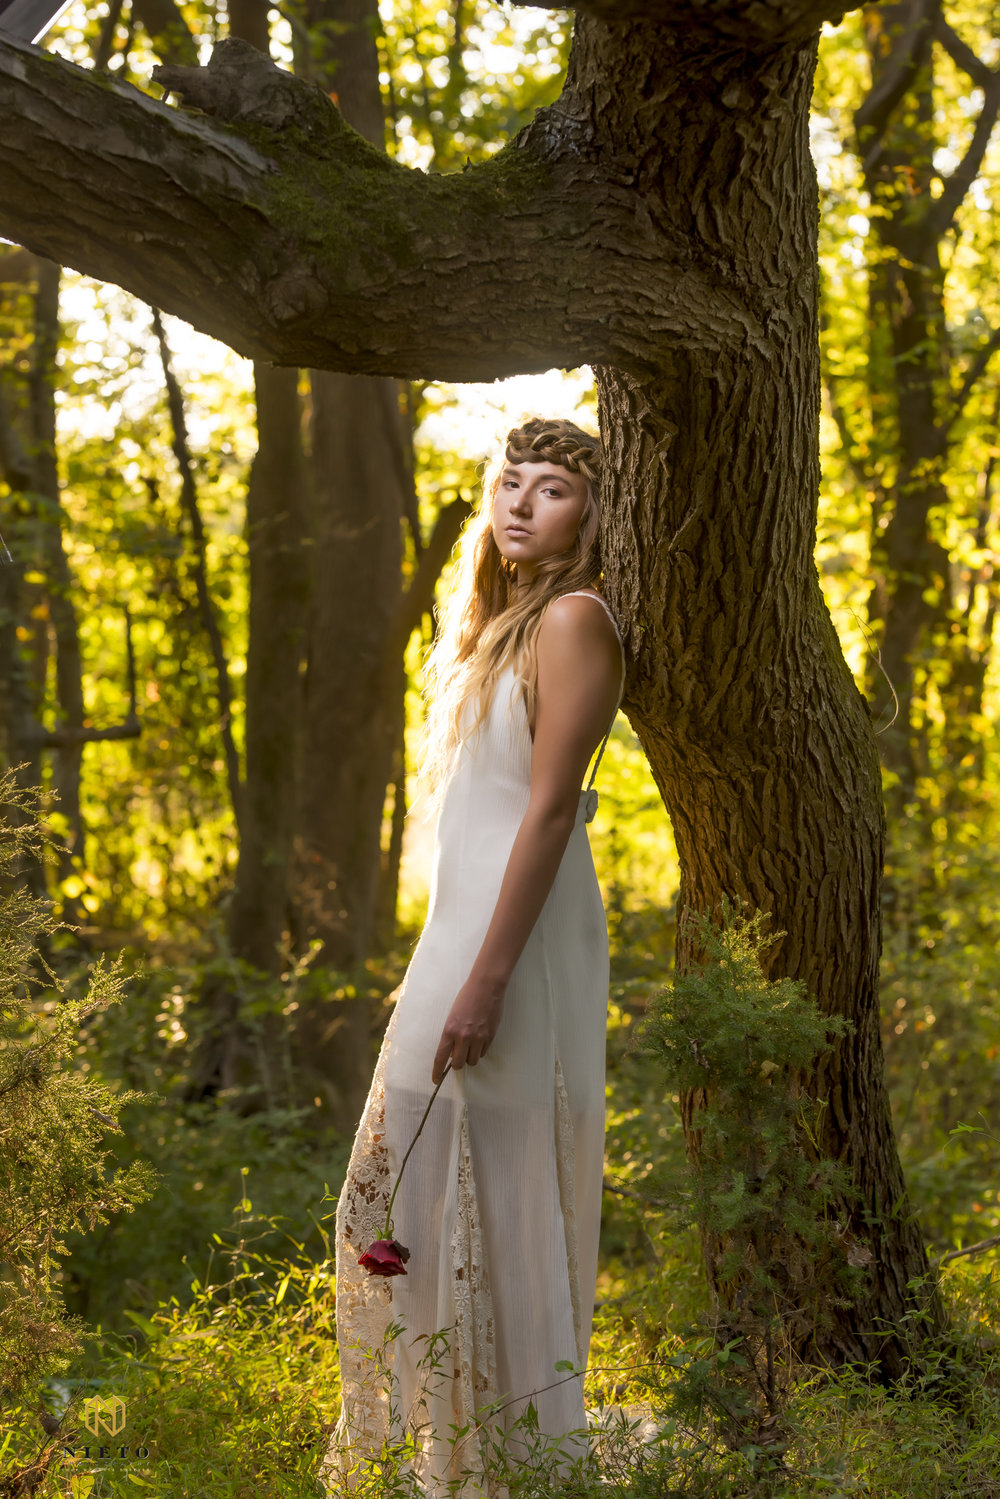 Photographer: Nieto Photography  Model: Shana Collins  Hair: Alli Carter  Wardrobe/Designer: Moon Flower Child Boutique